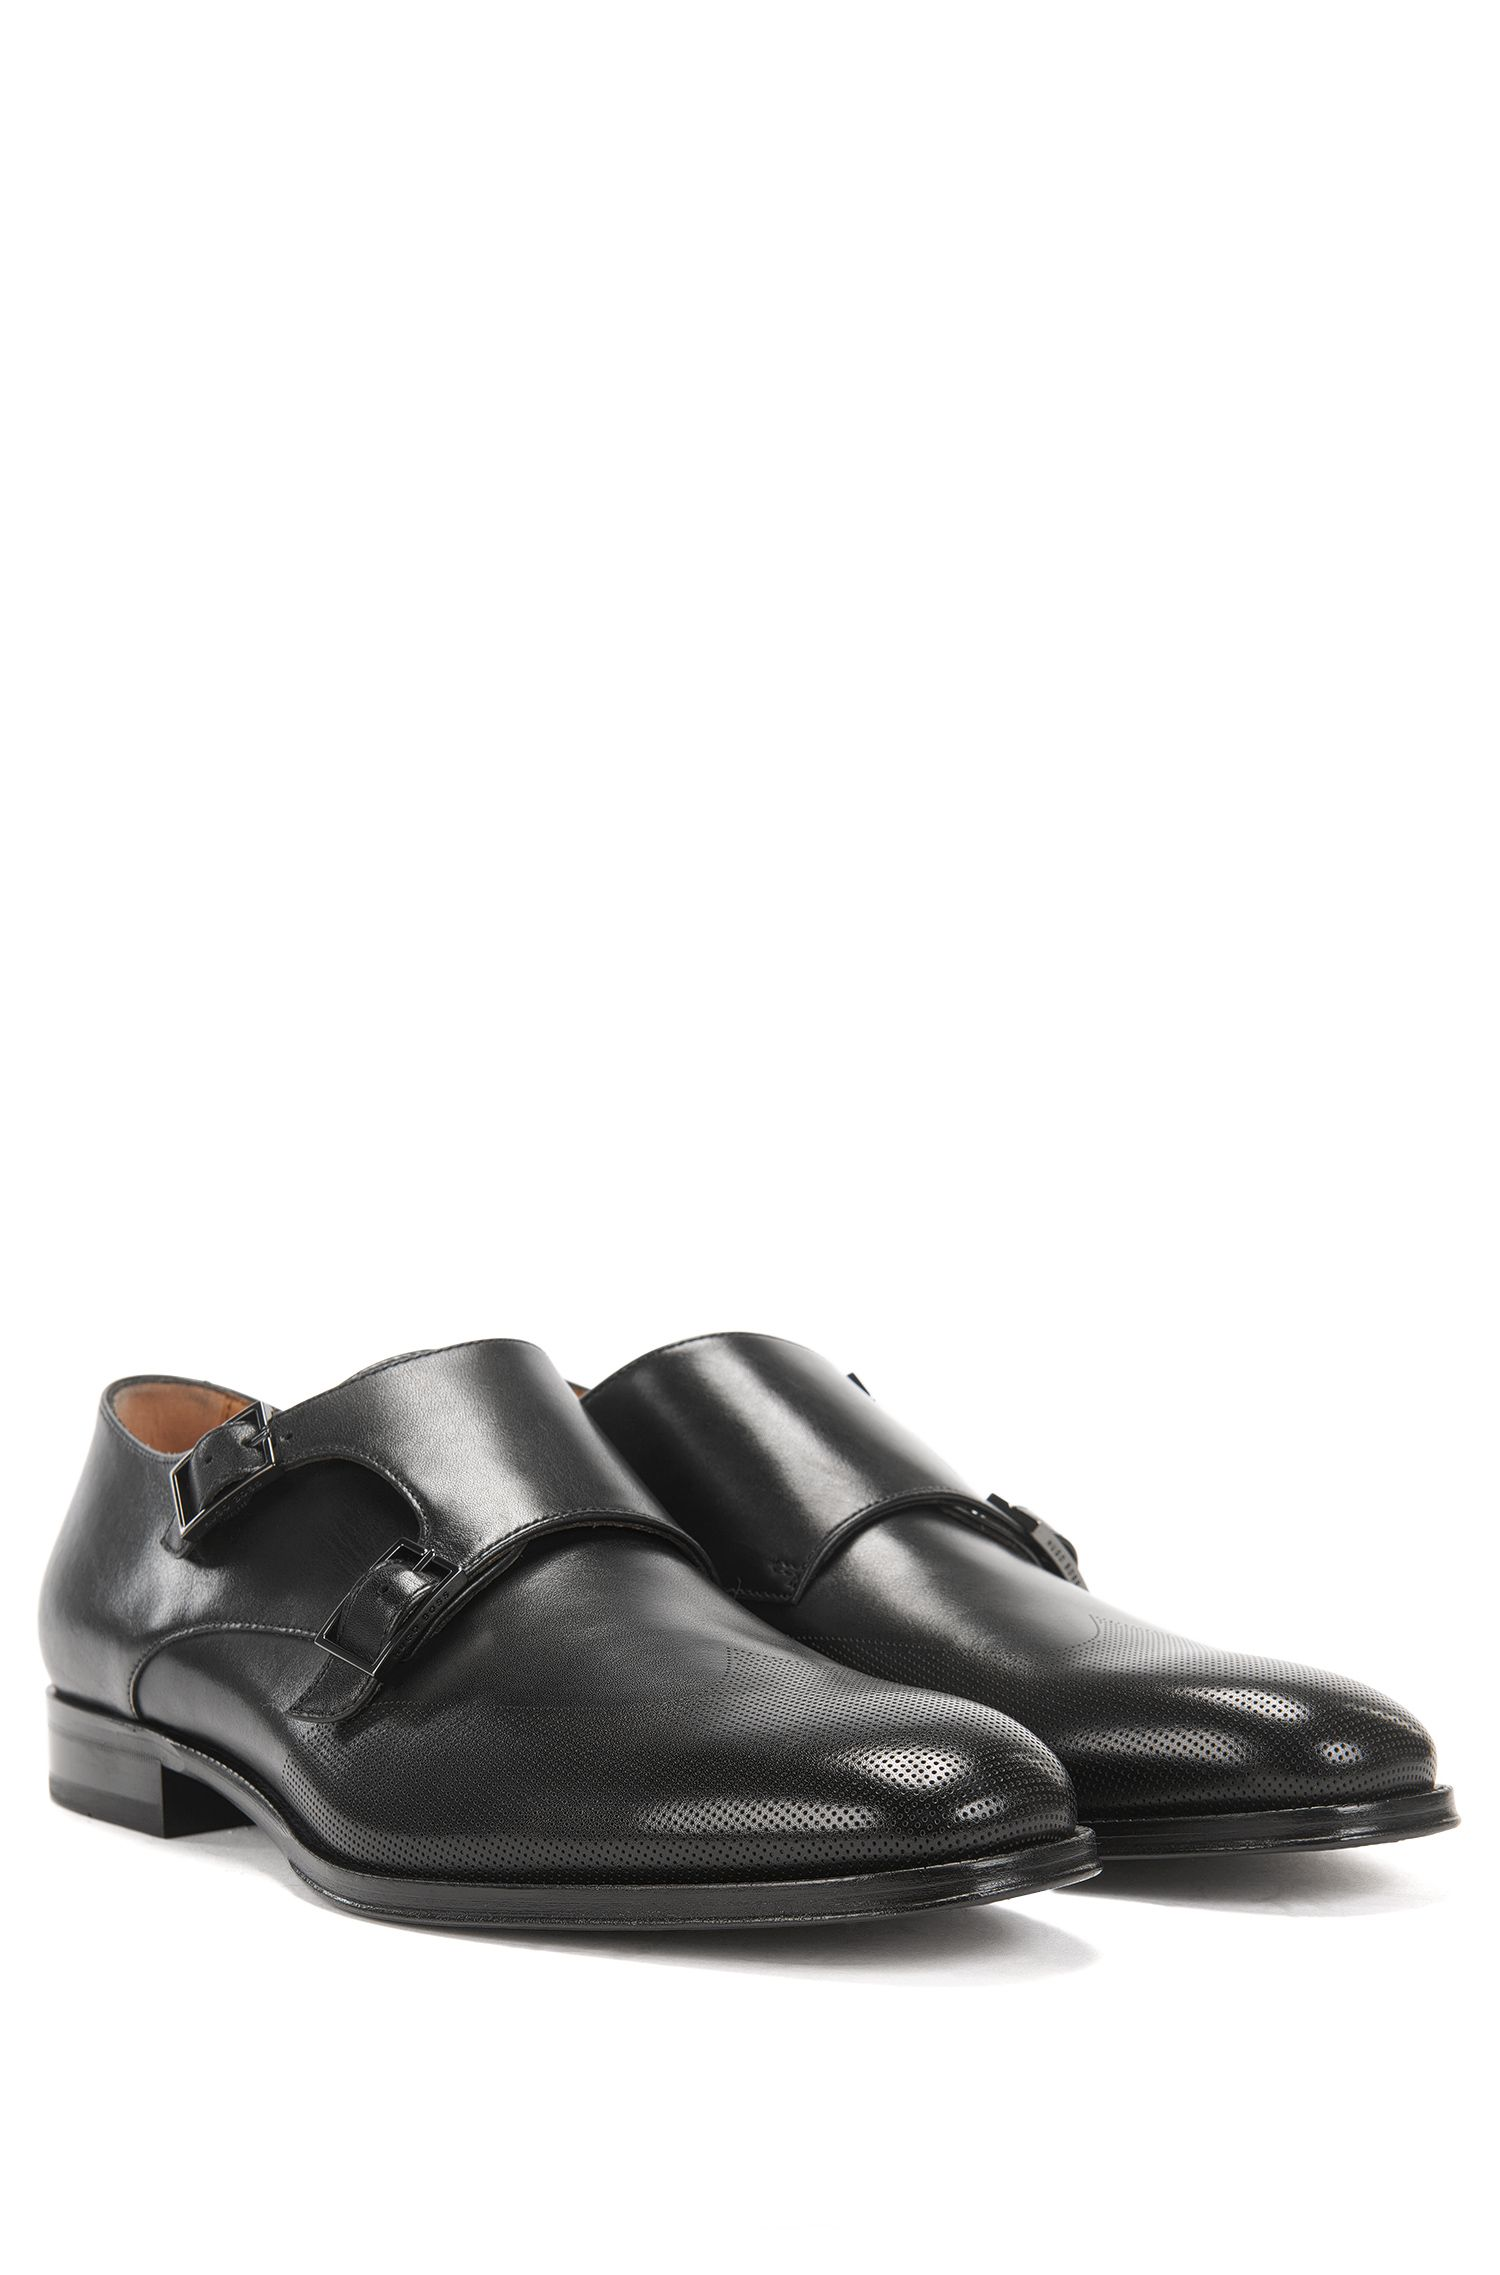 Italian-made calf-leather shoes with double monk strap